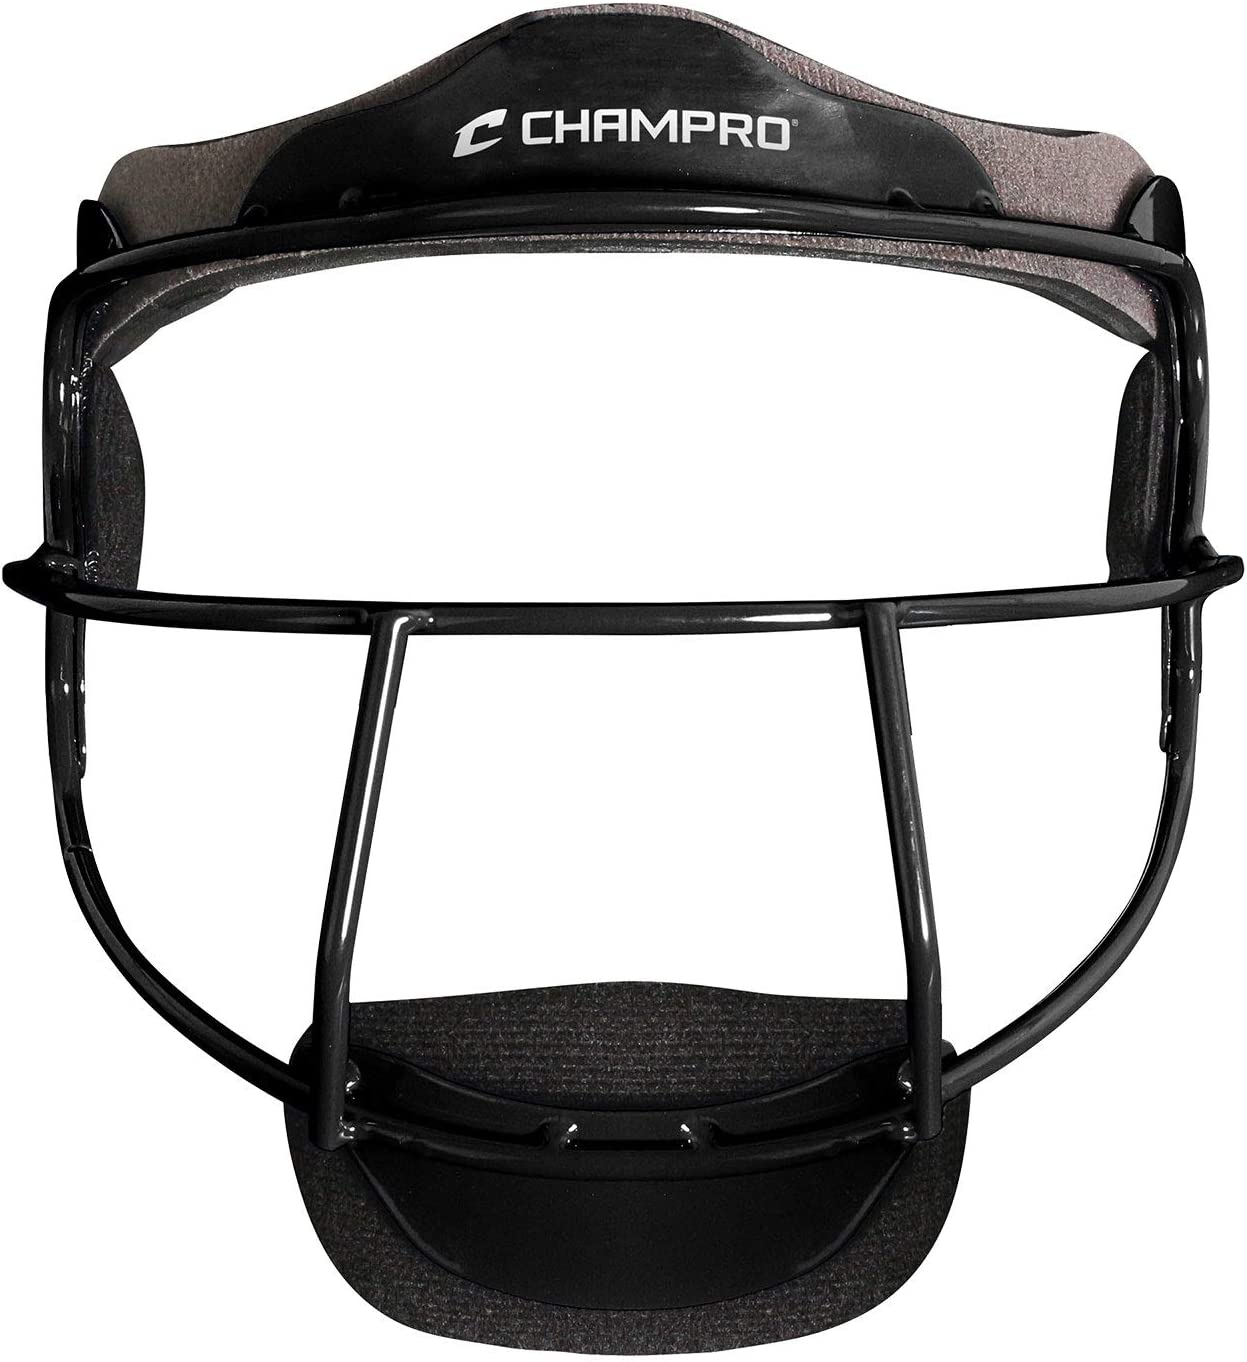 CHAMPRO Defensive Fielder Mask – Perfect for Softball, Teeball, Baseball, with sizes and colors for all ages : Sports & Outdoors